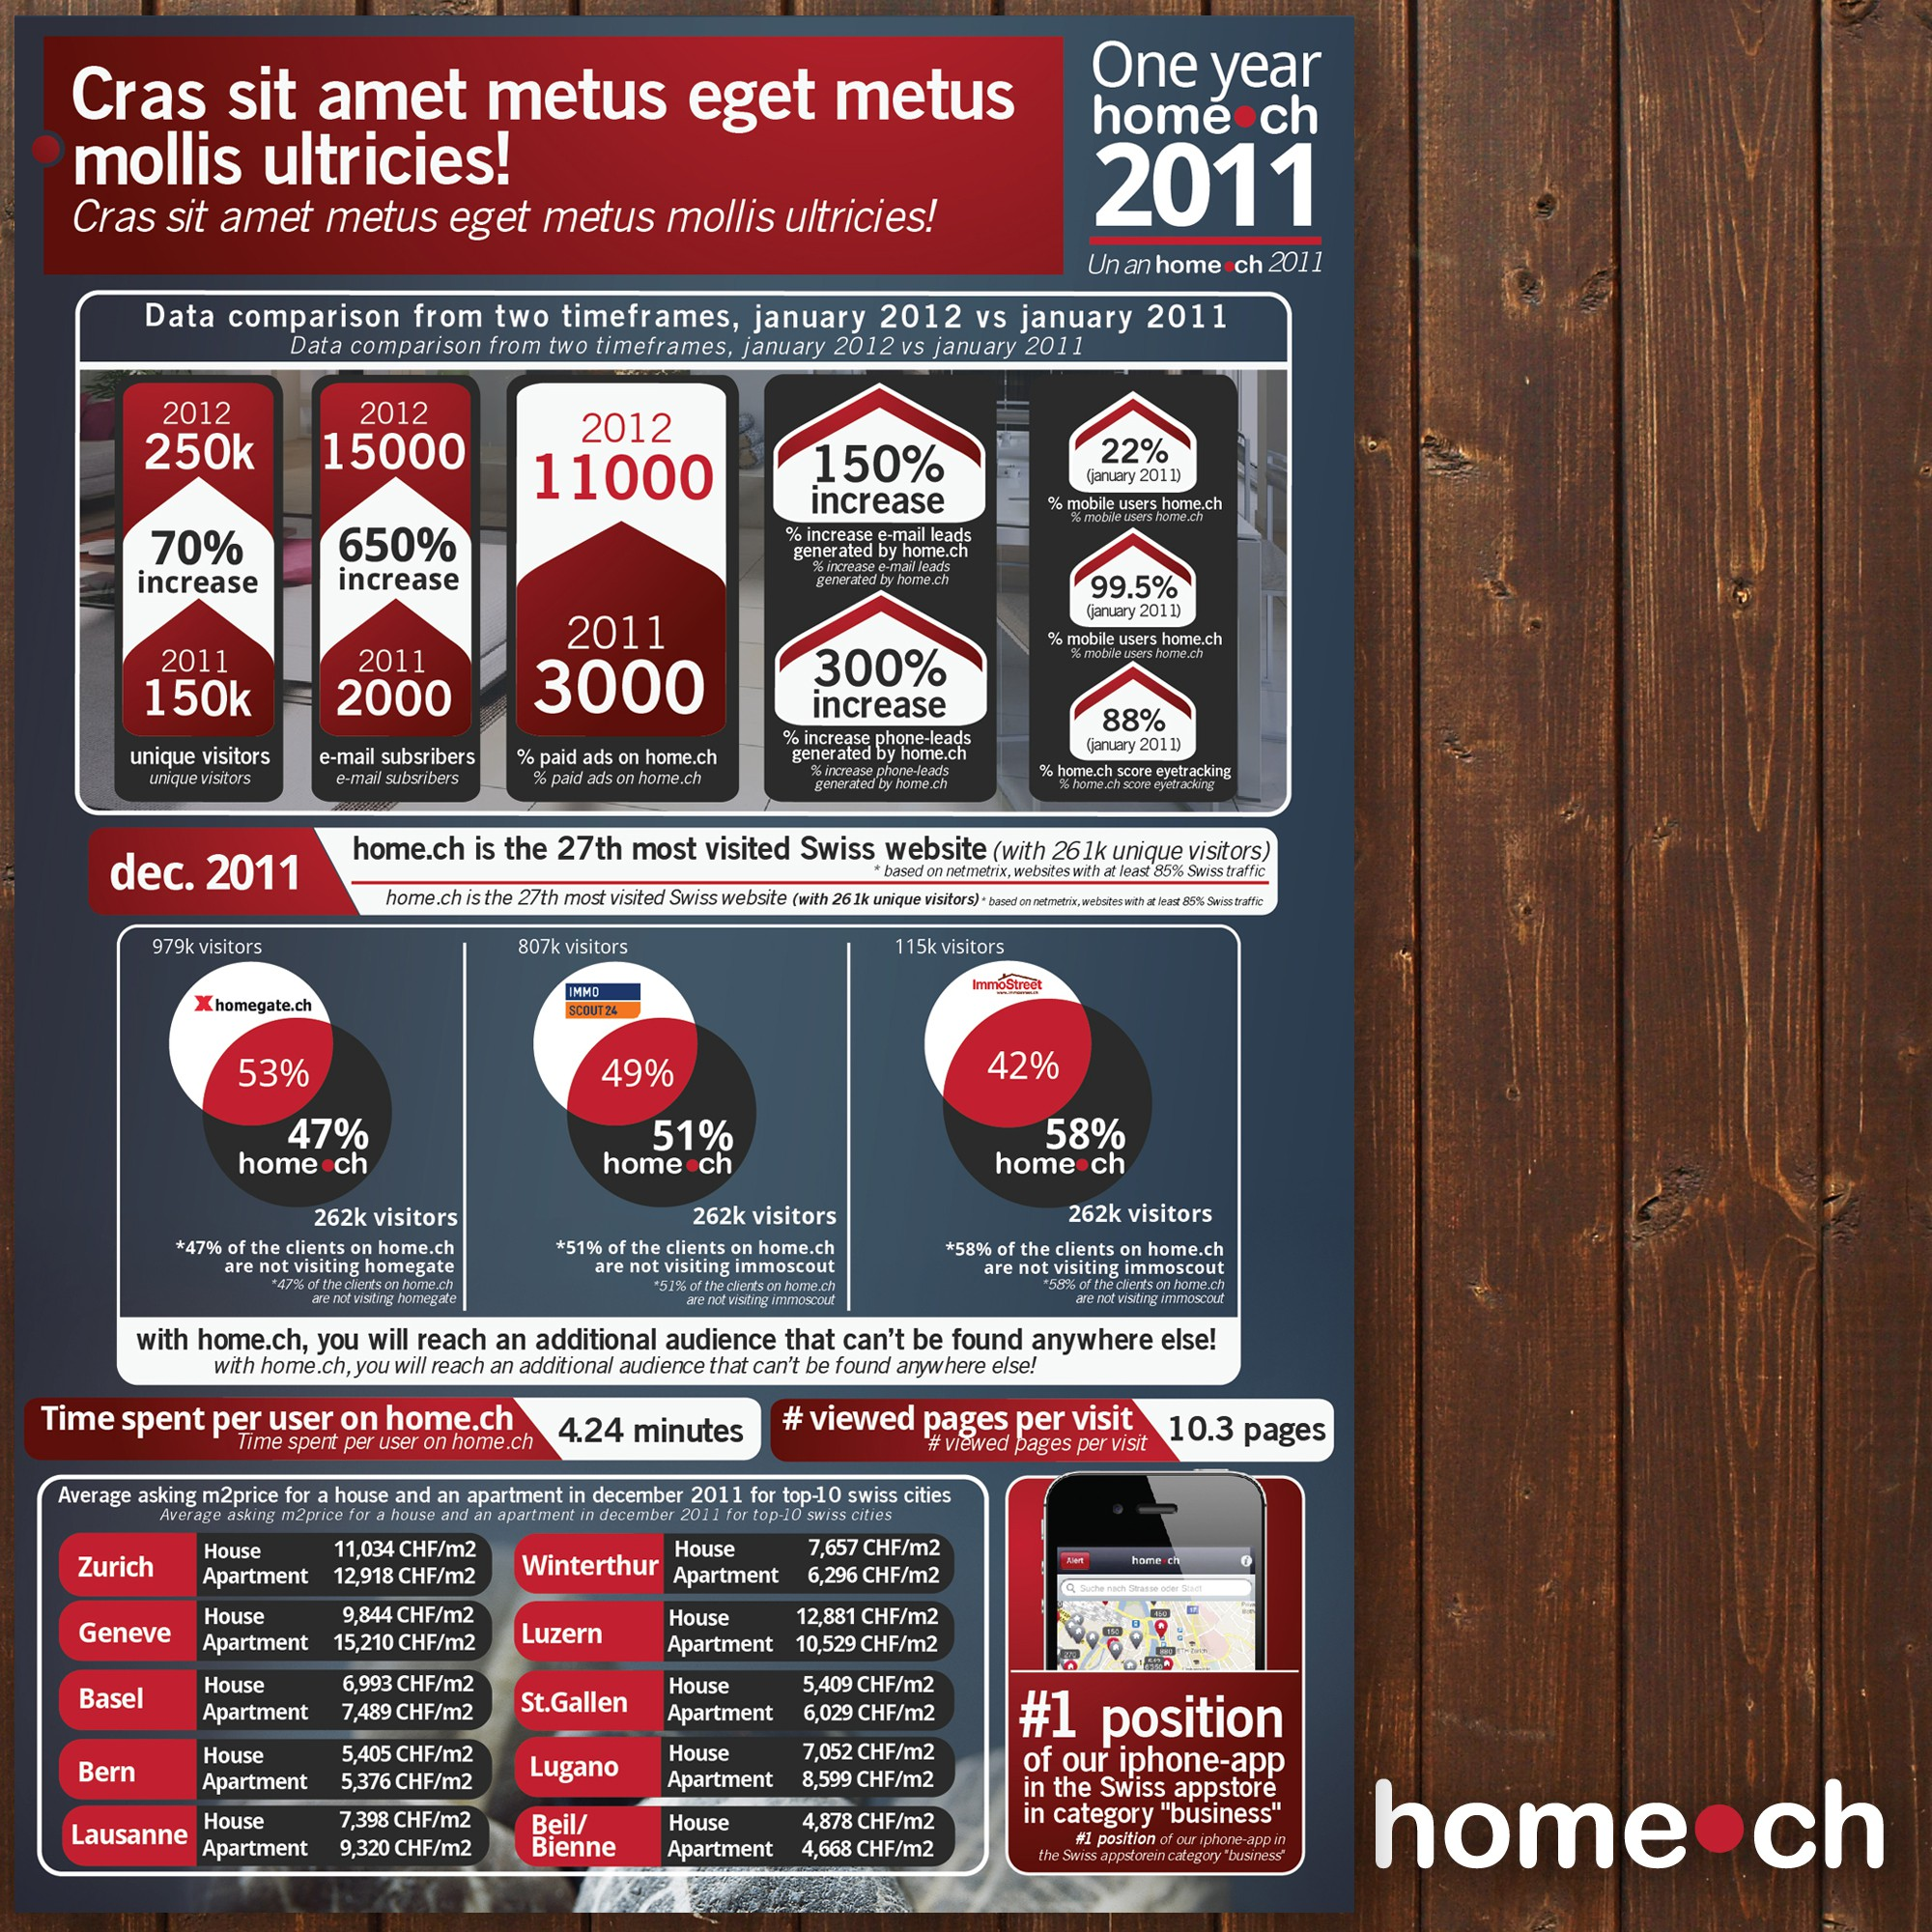 Create the next design for Infographic for 1 year home.ch